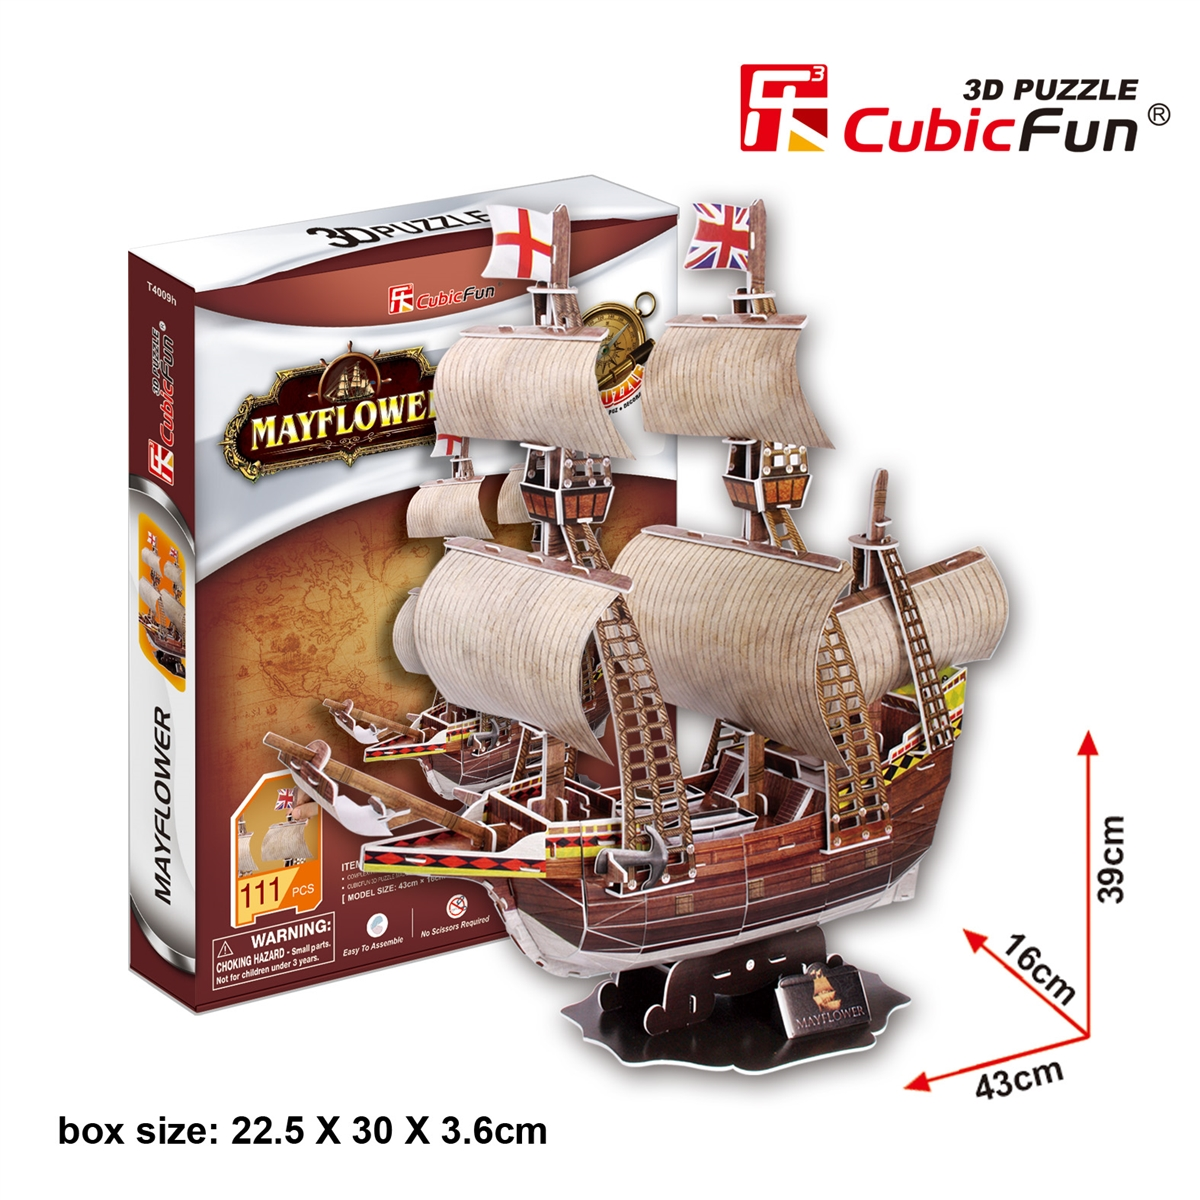 Mayflower Size 43*16*39 cm. Total 111 Pieces